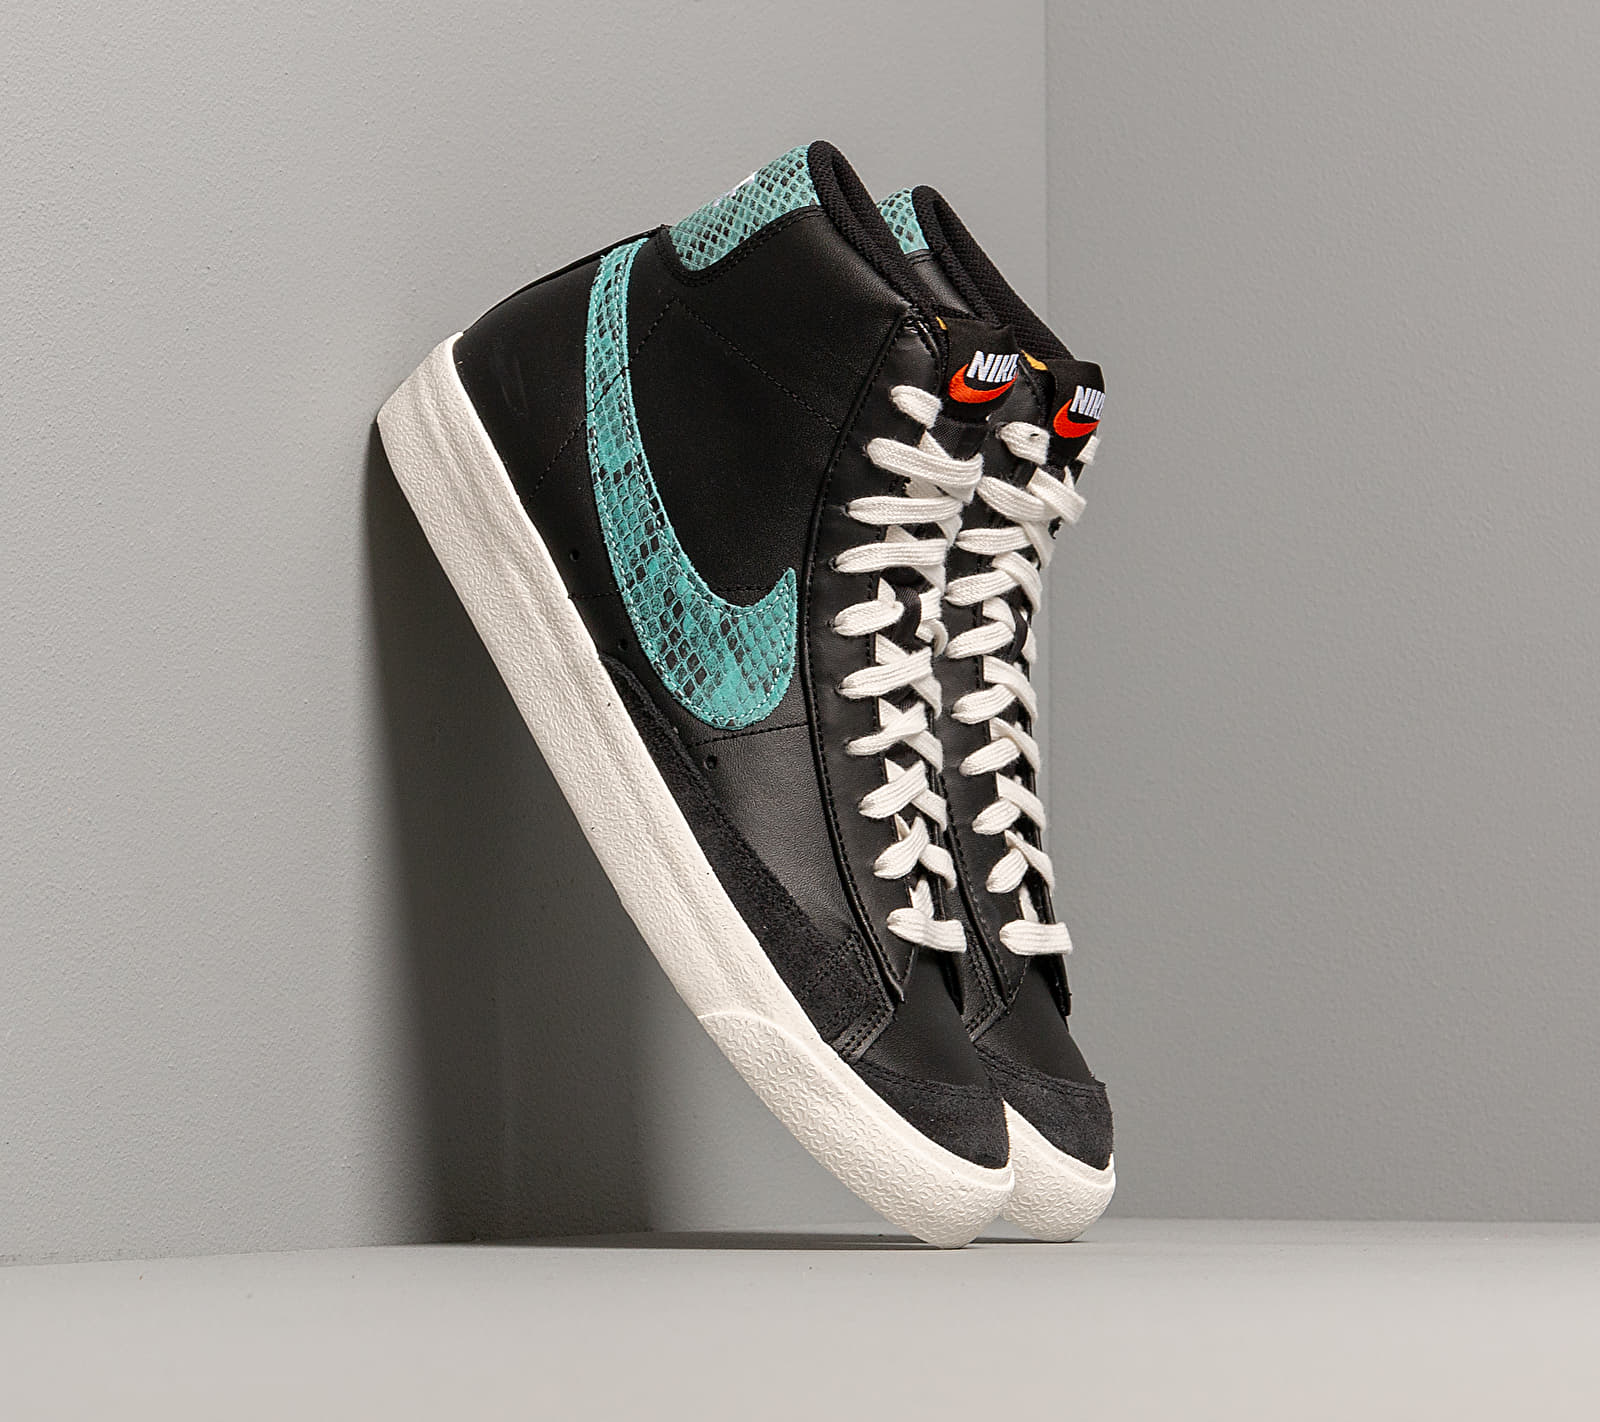 Nike Blazer Mid '77 Vntg We Reptile Black/ Light Aqua-Sail EUR 43